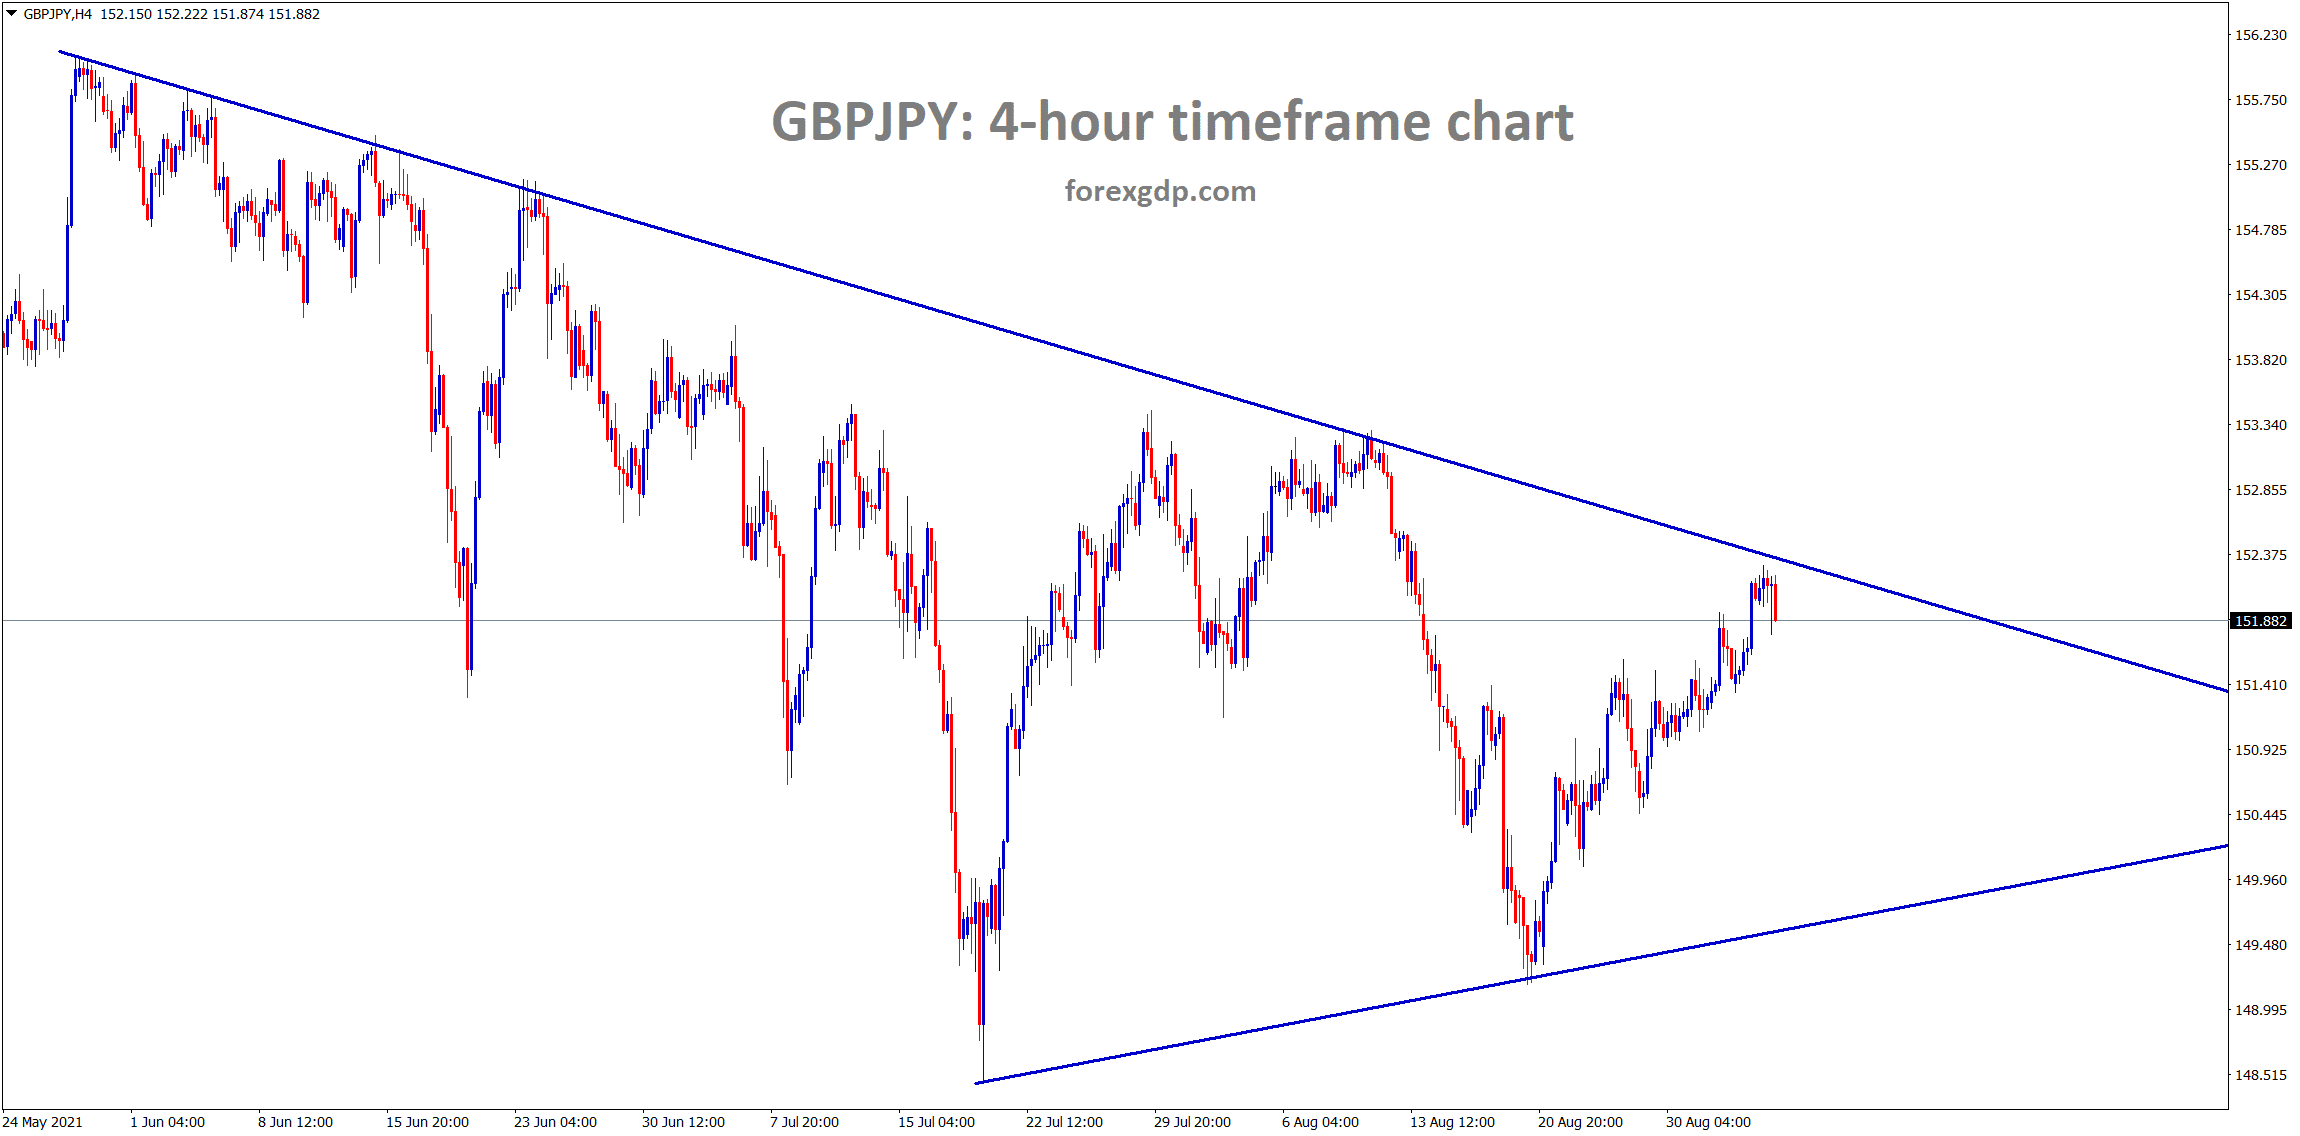 GBPJPY hits the lower high level in a downtrend line